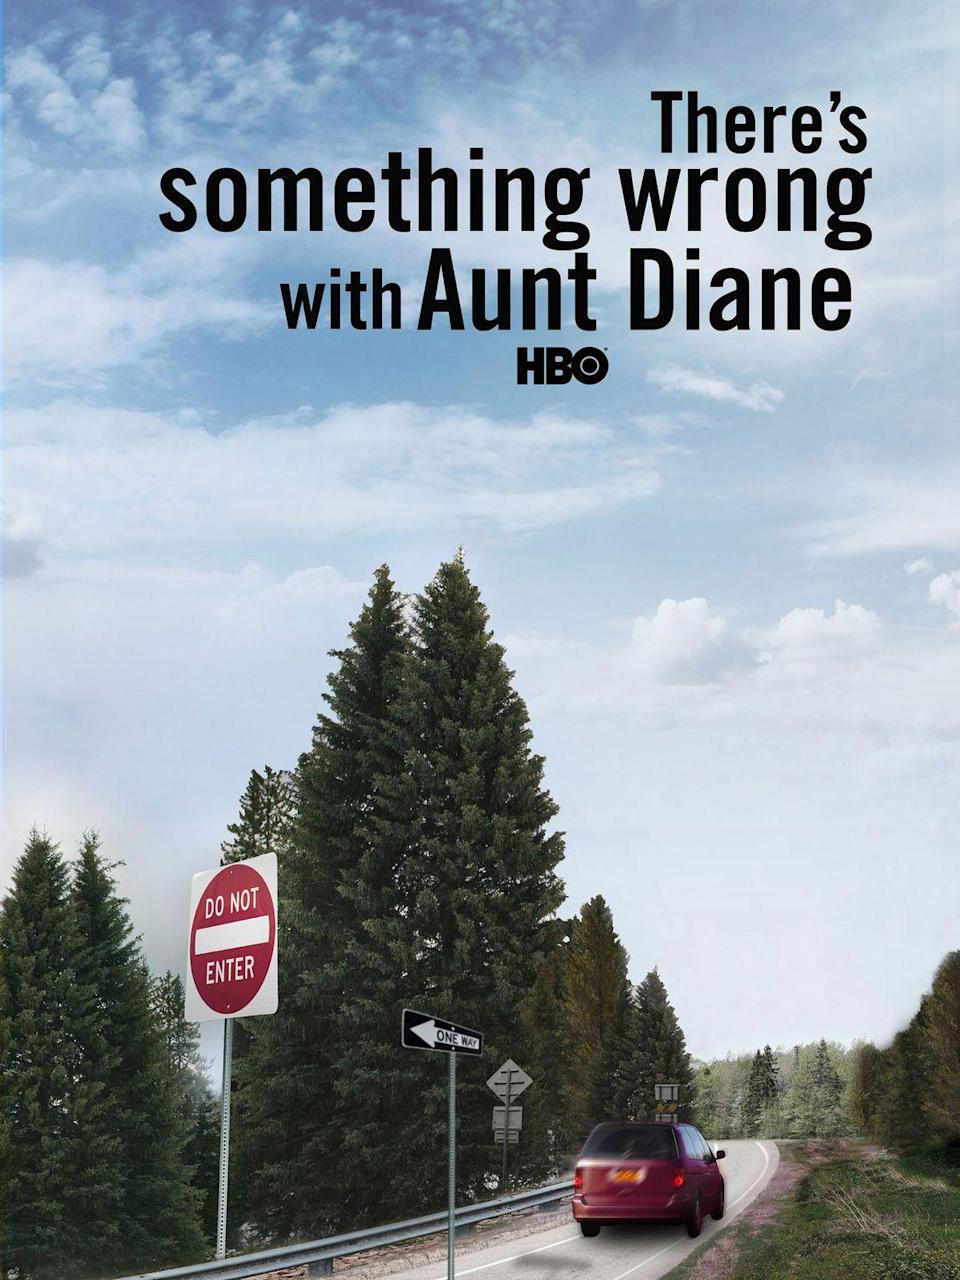 """<p>Diane Schuler was driving a familiar route home from vacation when she crashed into an oncoming car, killing herself and seven others (including her daughter and three nieces). People saw her as the perfect mother who wouldn't endanger a soul, but she had something to hide. At the time of the accident, her blood alcohol concentration was twice the legal limit and she had a high level of THC in her blood. And that's only the beginning of the mystery...</p><p><a class=""""link rapid-noclick-resp"""" href=""""https://play.hbogo.com/feature/urn:hbo:feature:GVU3eoAuW8VFvjSoJAYhG?camp=Search&play=true"""" rel=""""nofollow noopener"""" target=""""_blank"""" data-ylk=""""slk:Watch Now"""">Watch Now</a></p>"""